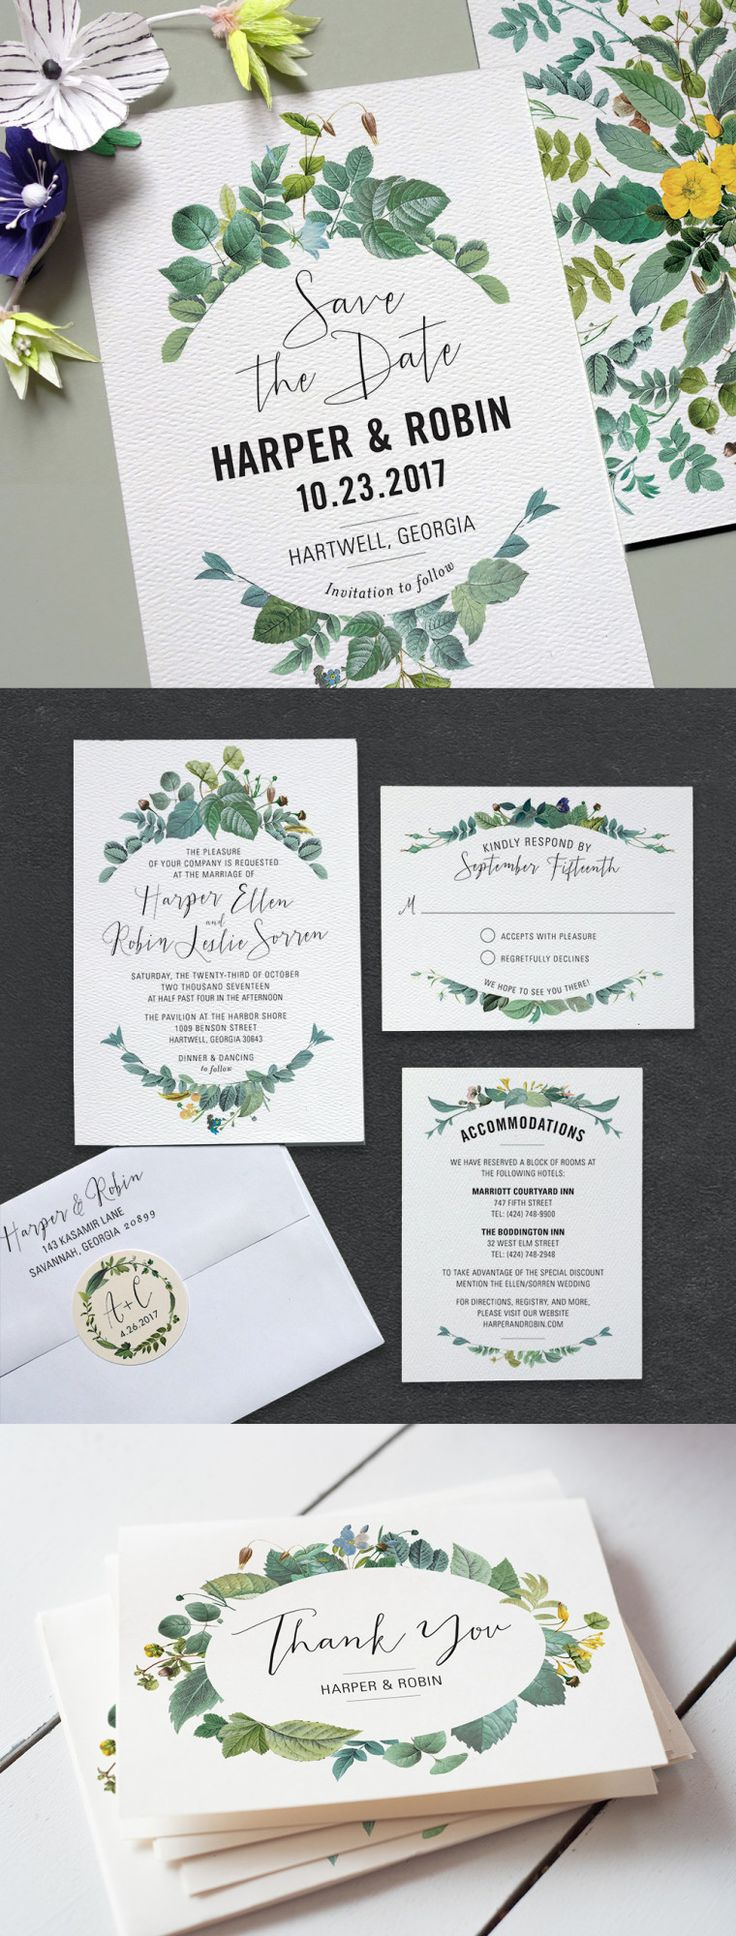 91 best Wedding Invitations images on Pinterest | Weddings, Wedding ...